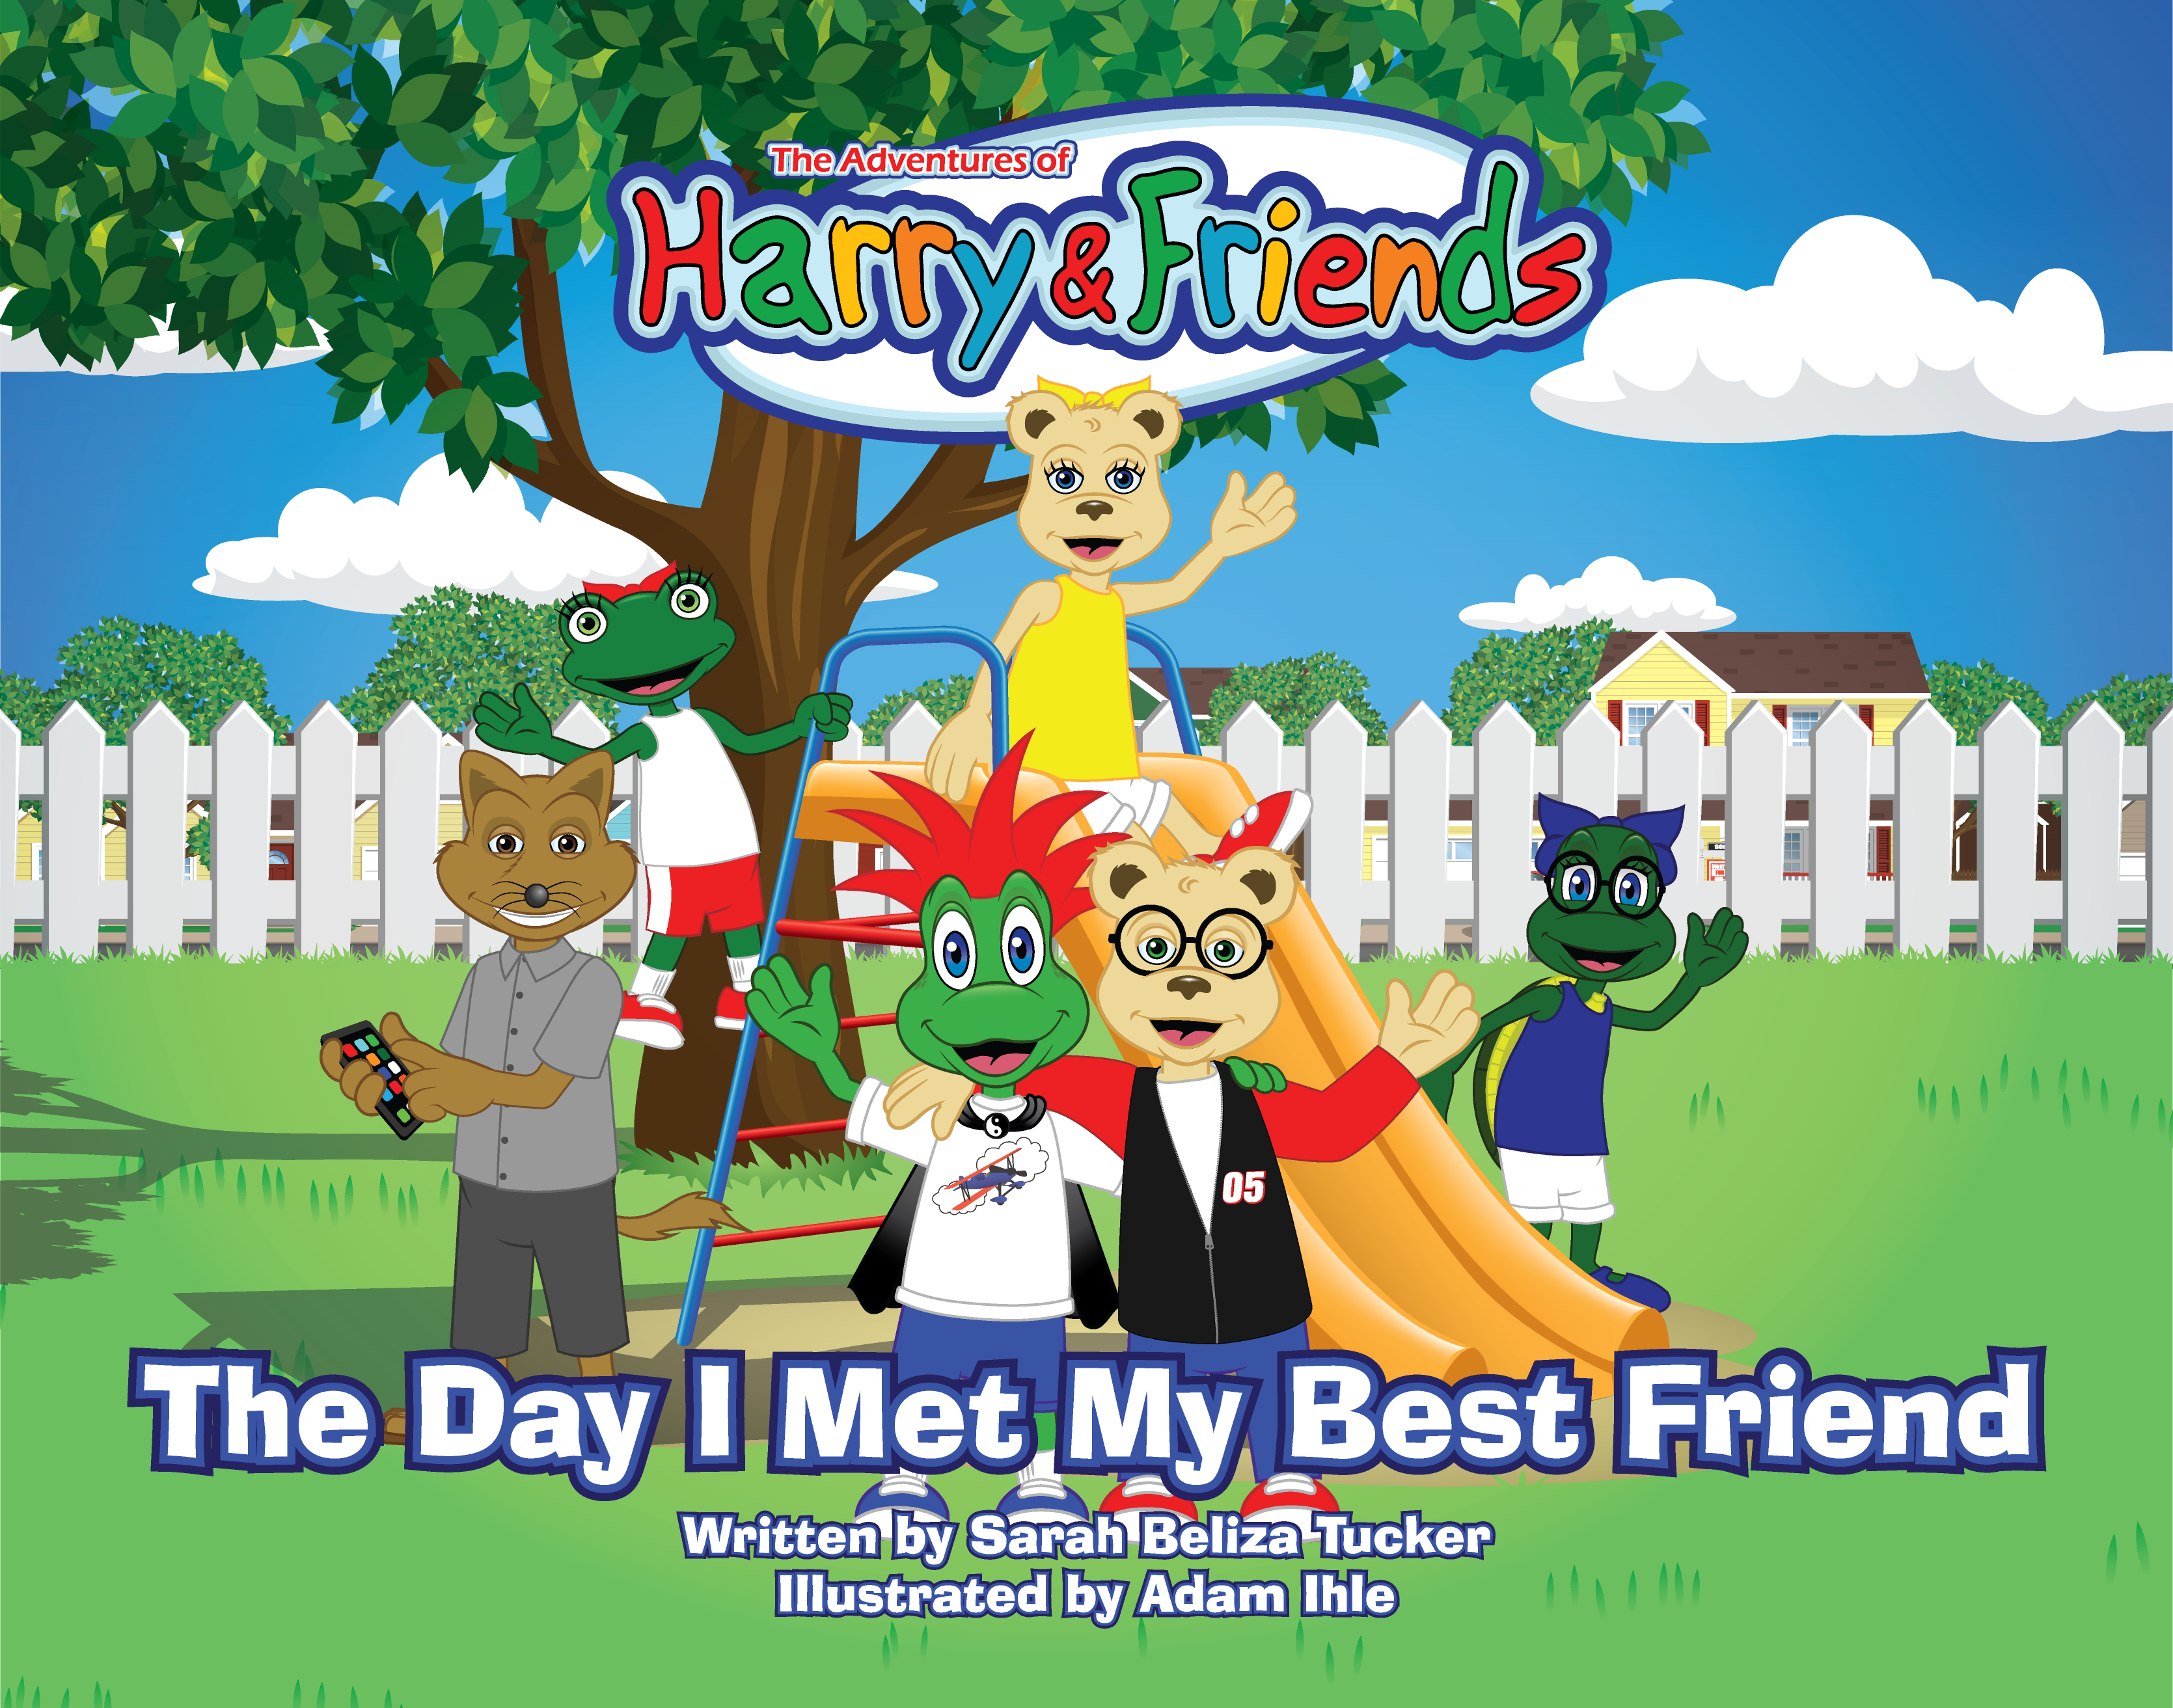 The Day I Met My Best Friend